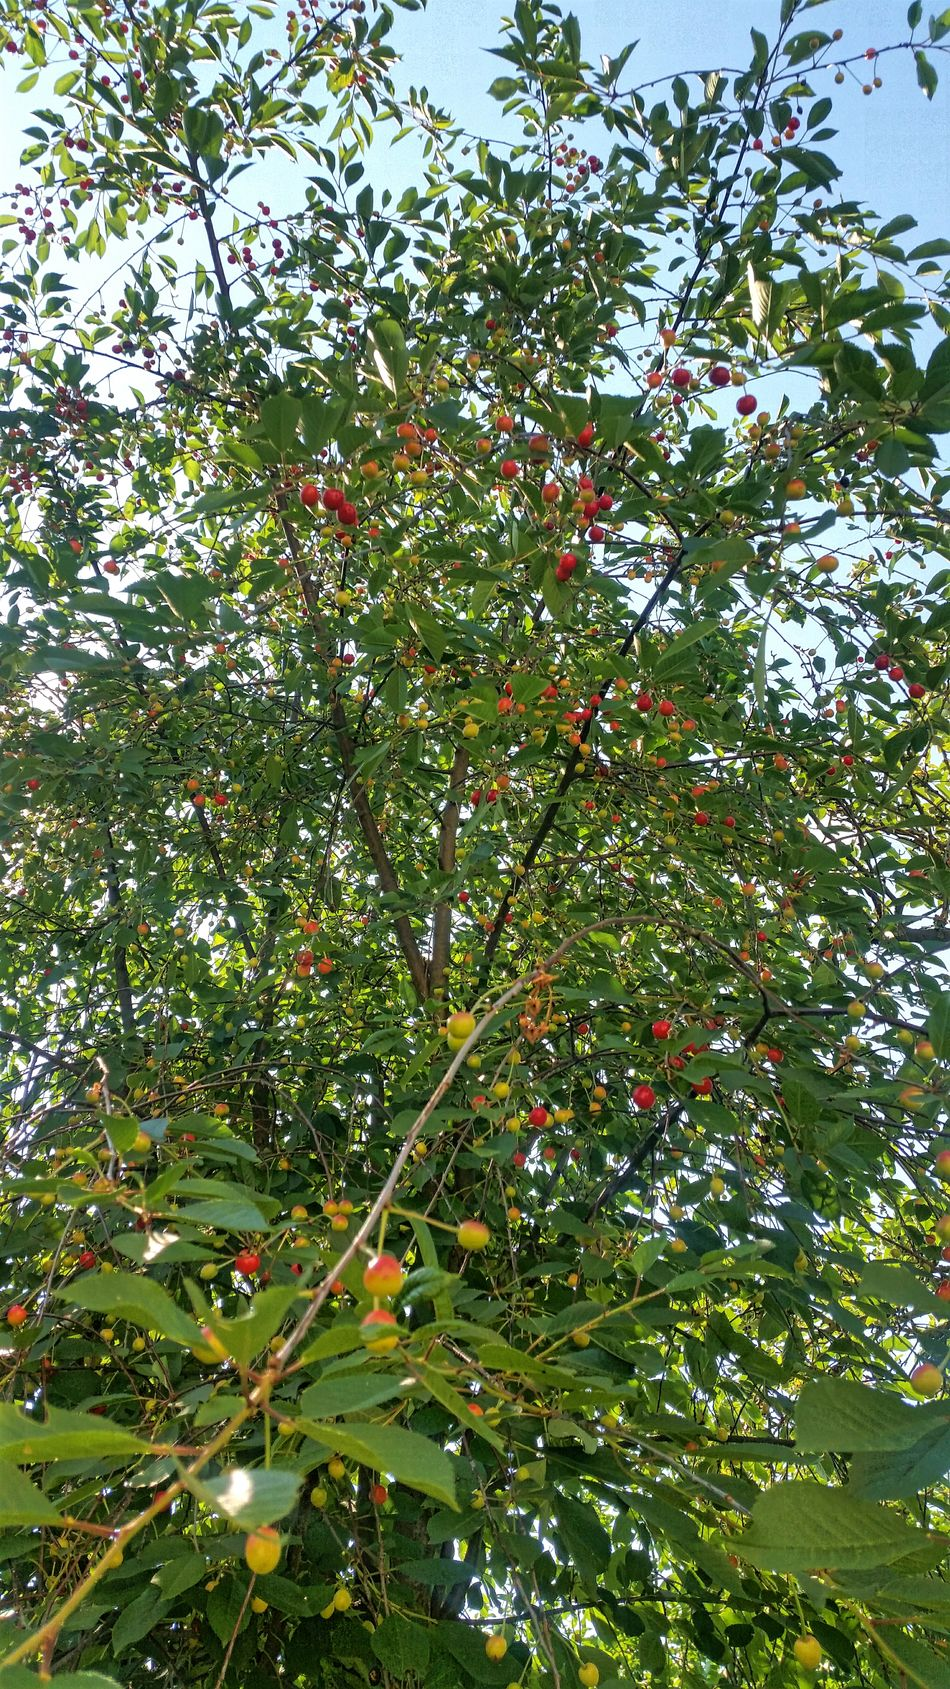 Abundance Beauty In Nature Branch Cherry Tree Freshness Green Color Growth Low Angle View Nature No People Outdoors Plant Red Sky Sour Cherry Tree